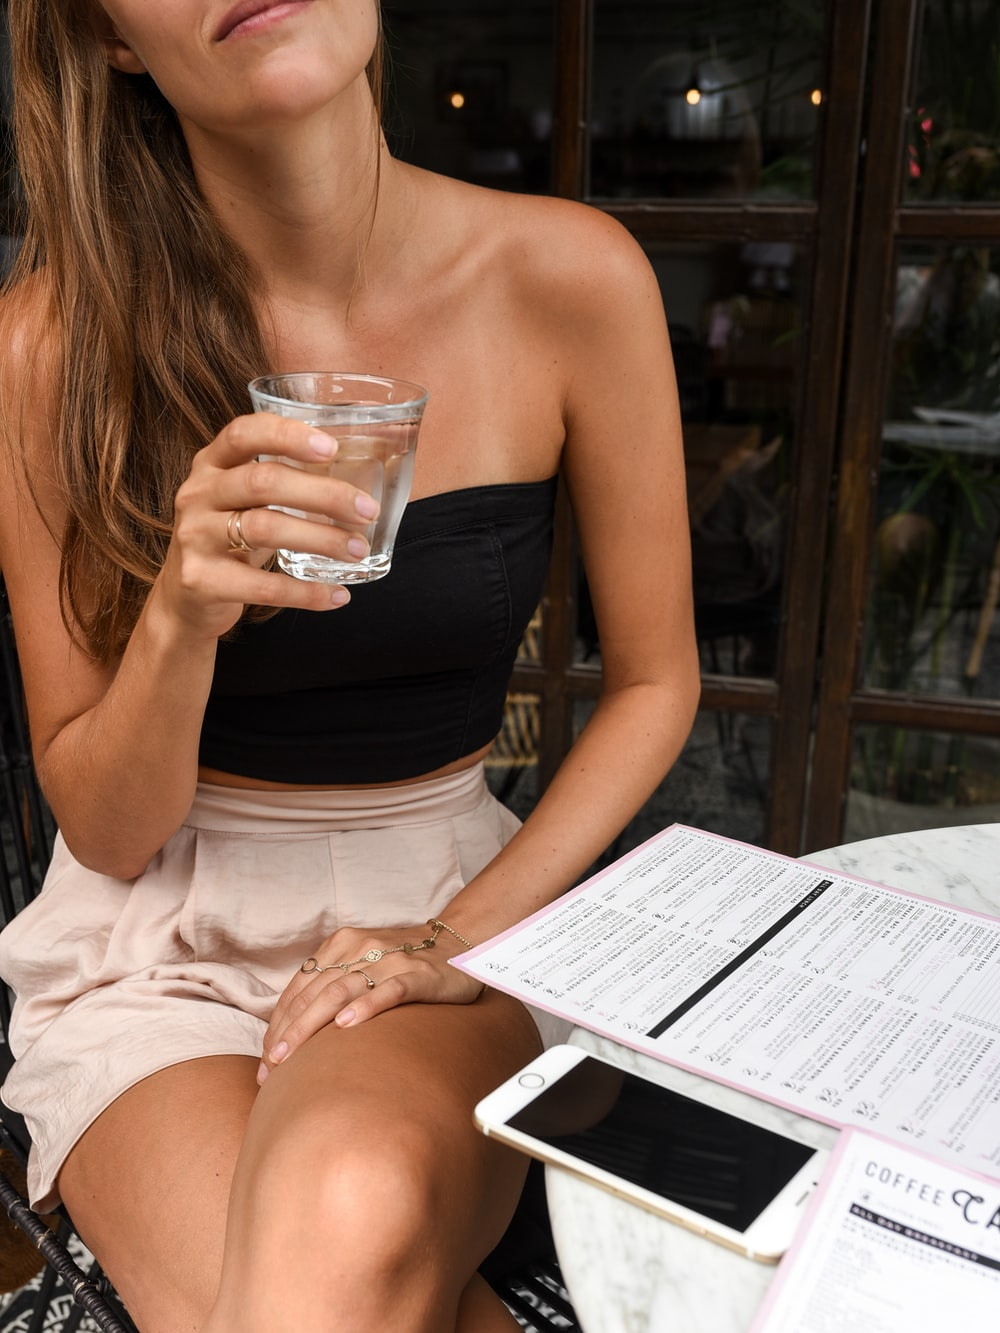 woman in black crop top holding clear rock glass